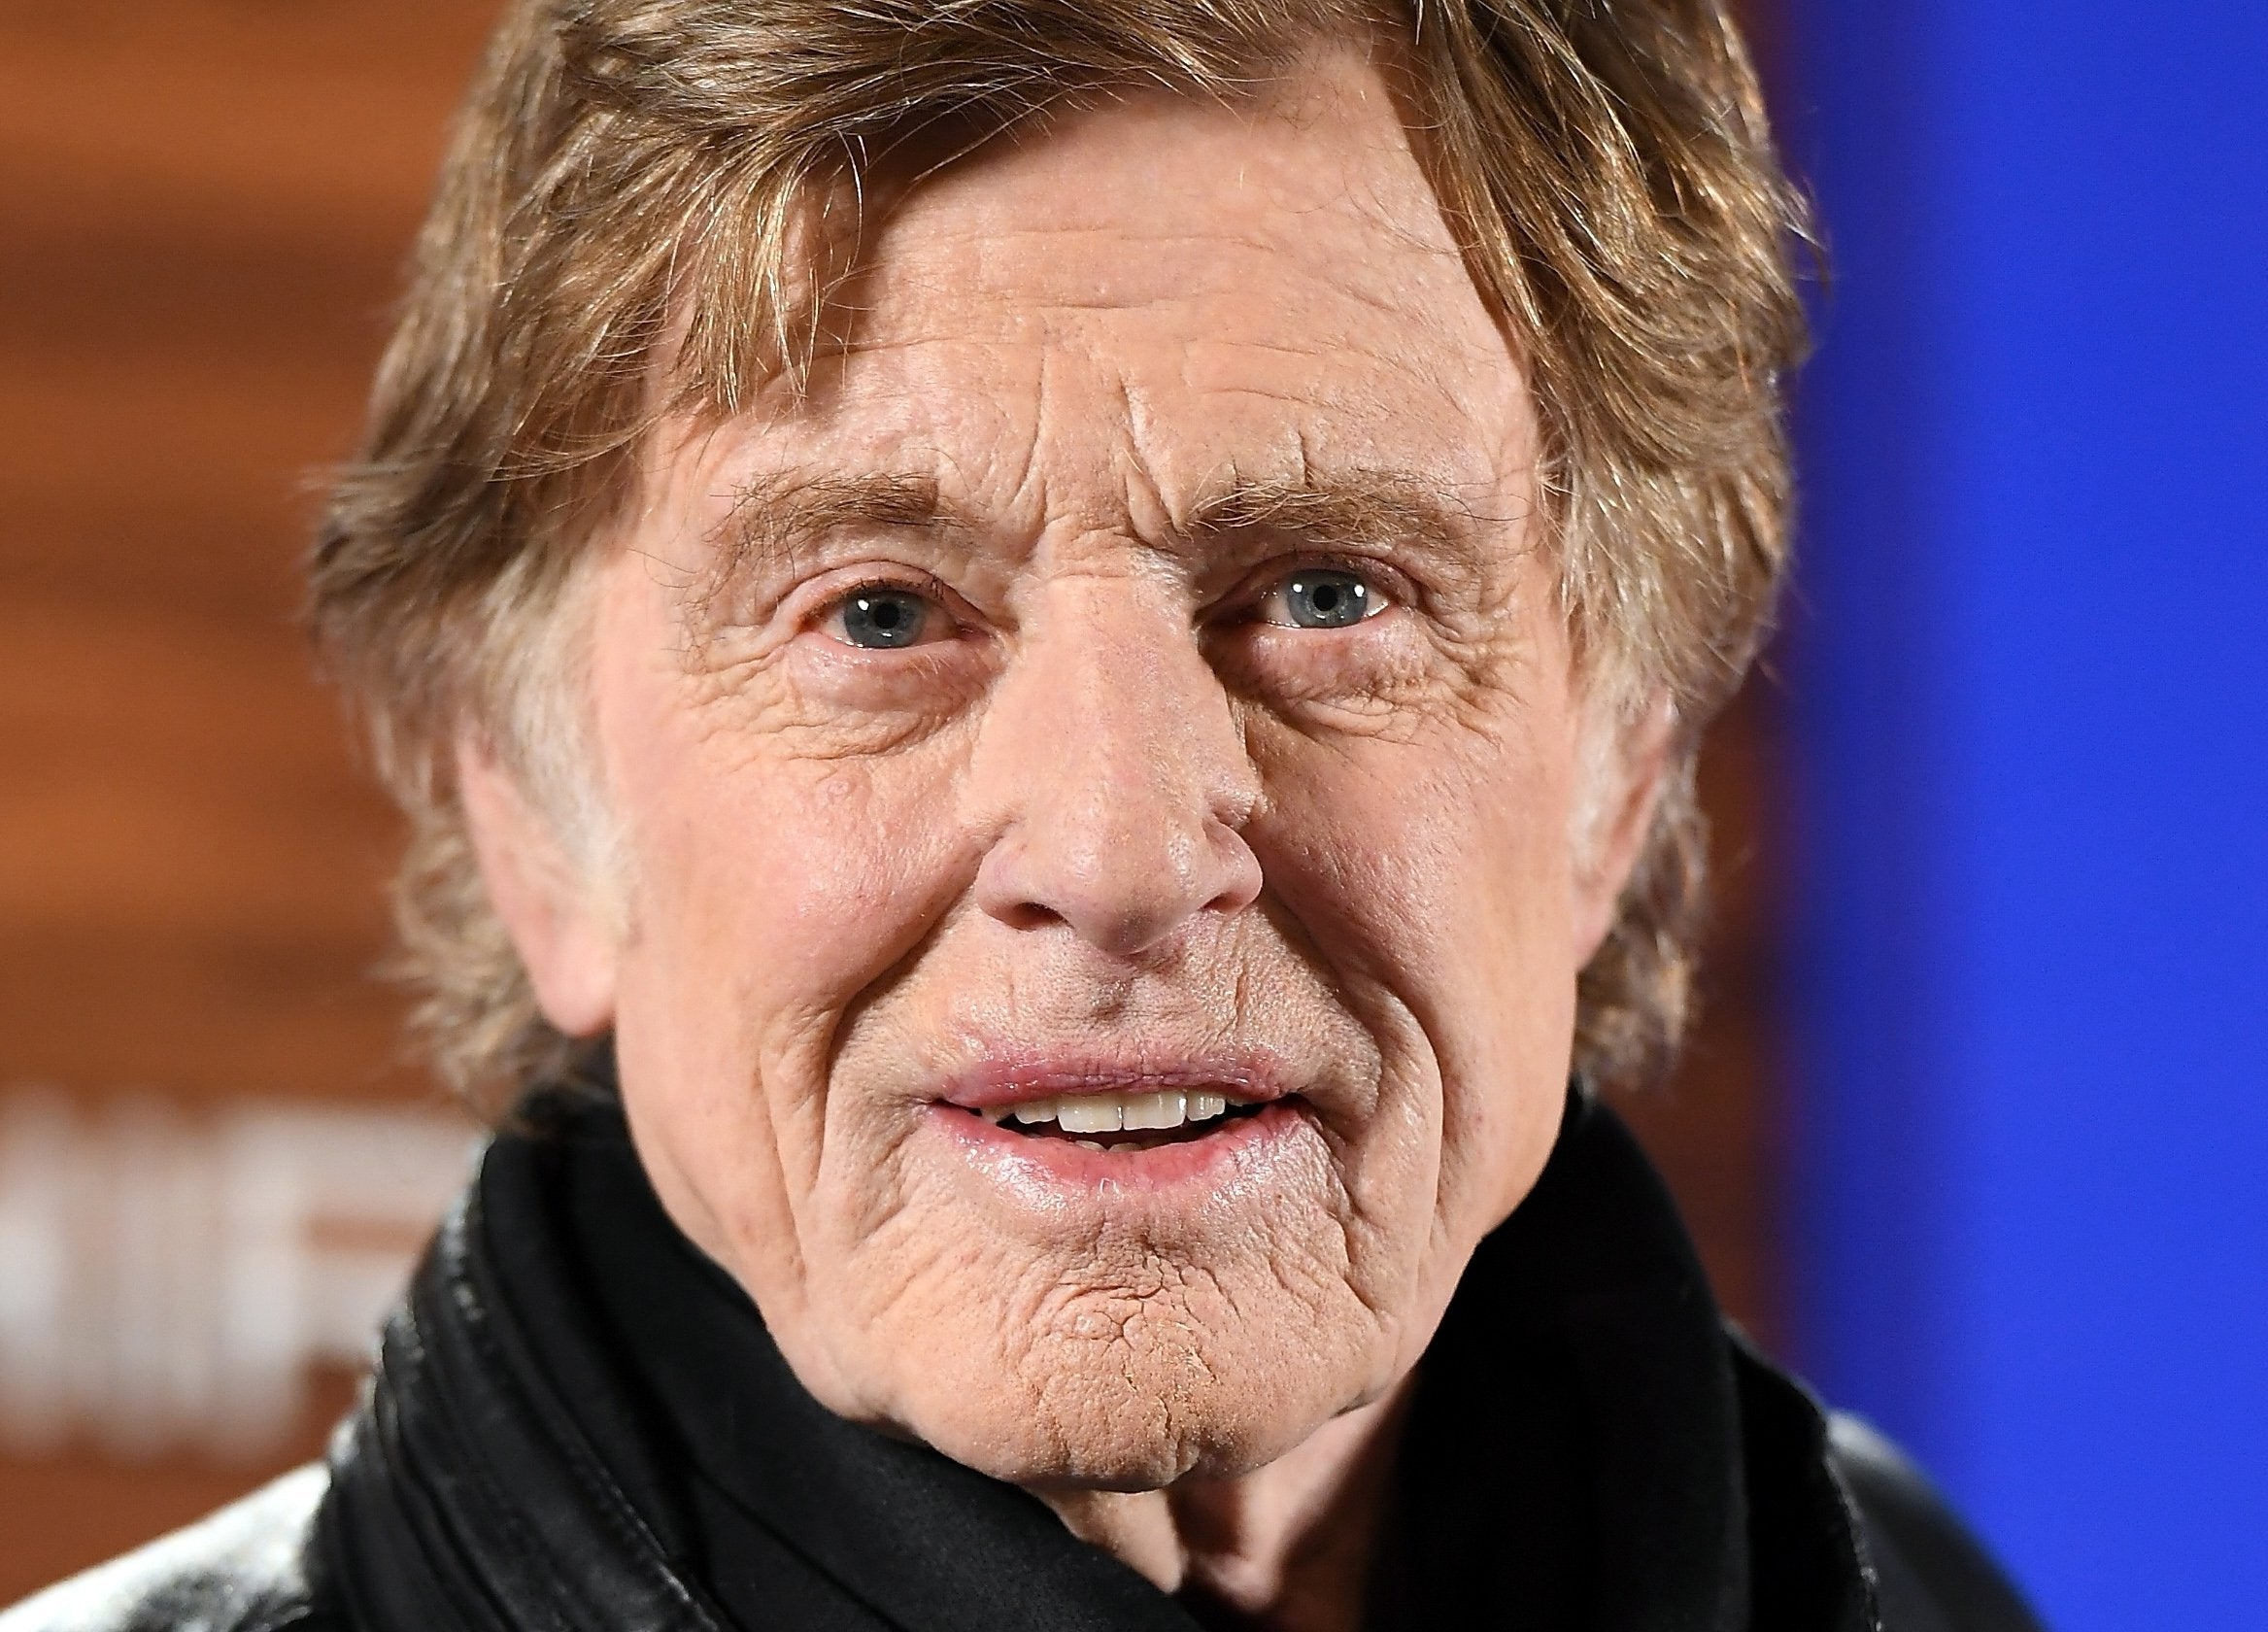 Robert Redford retires from acting at age 82